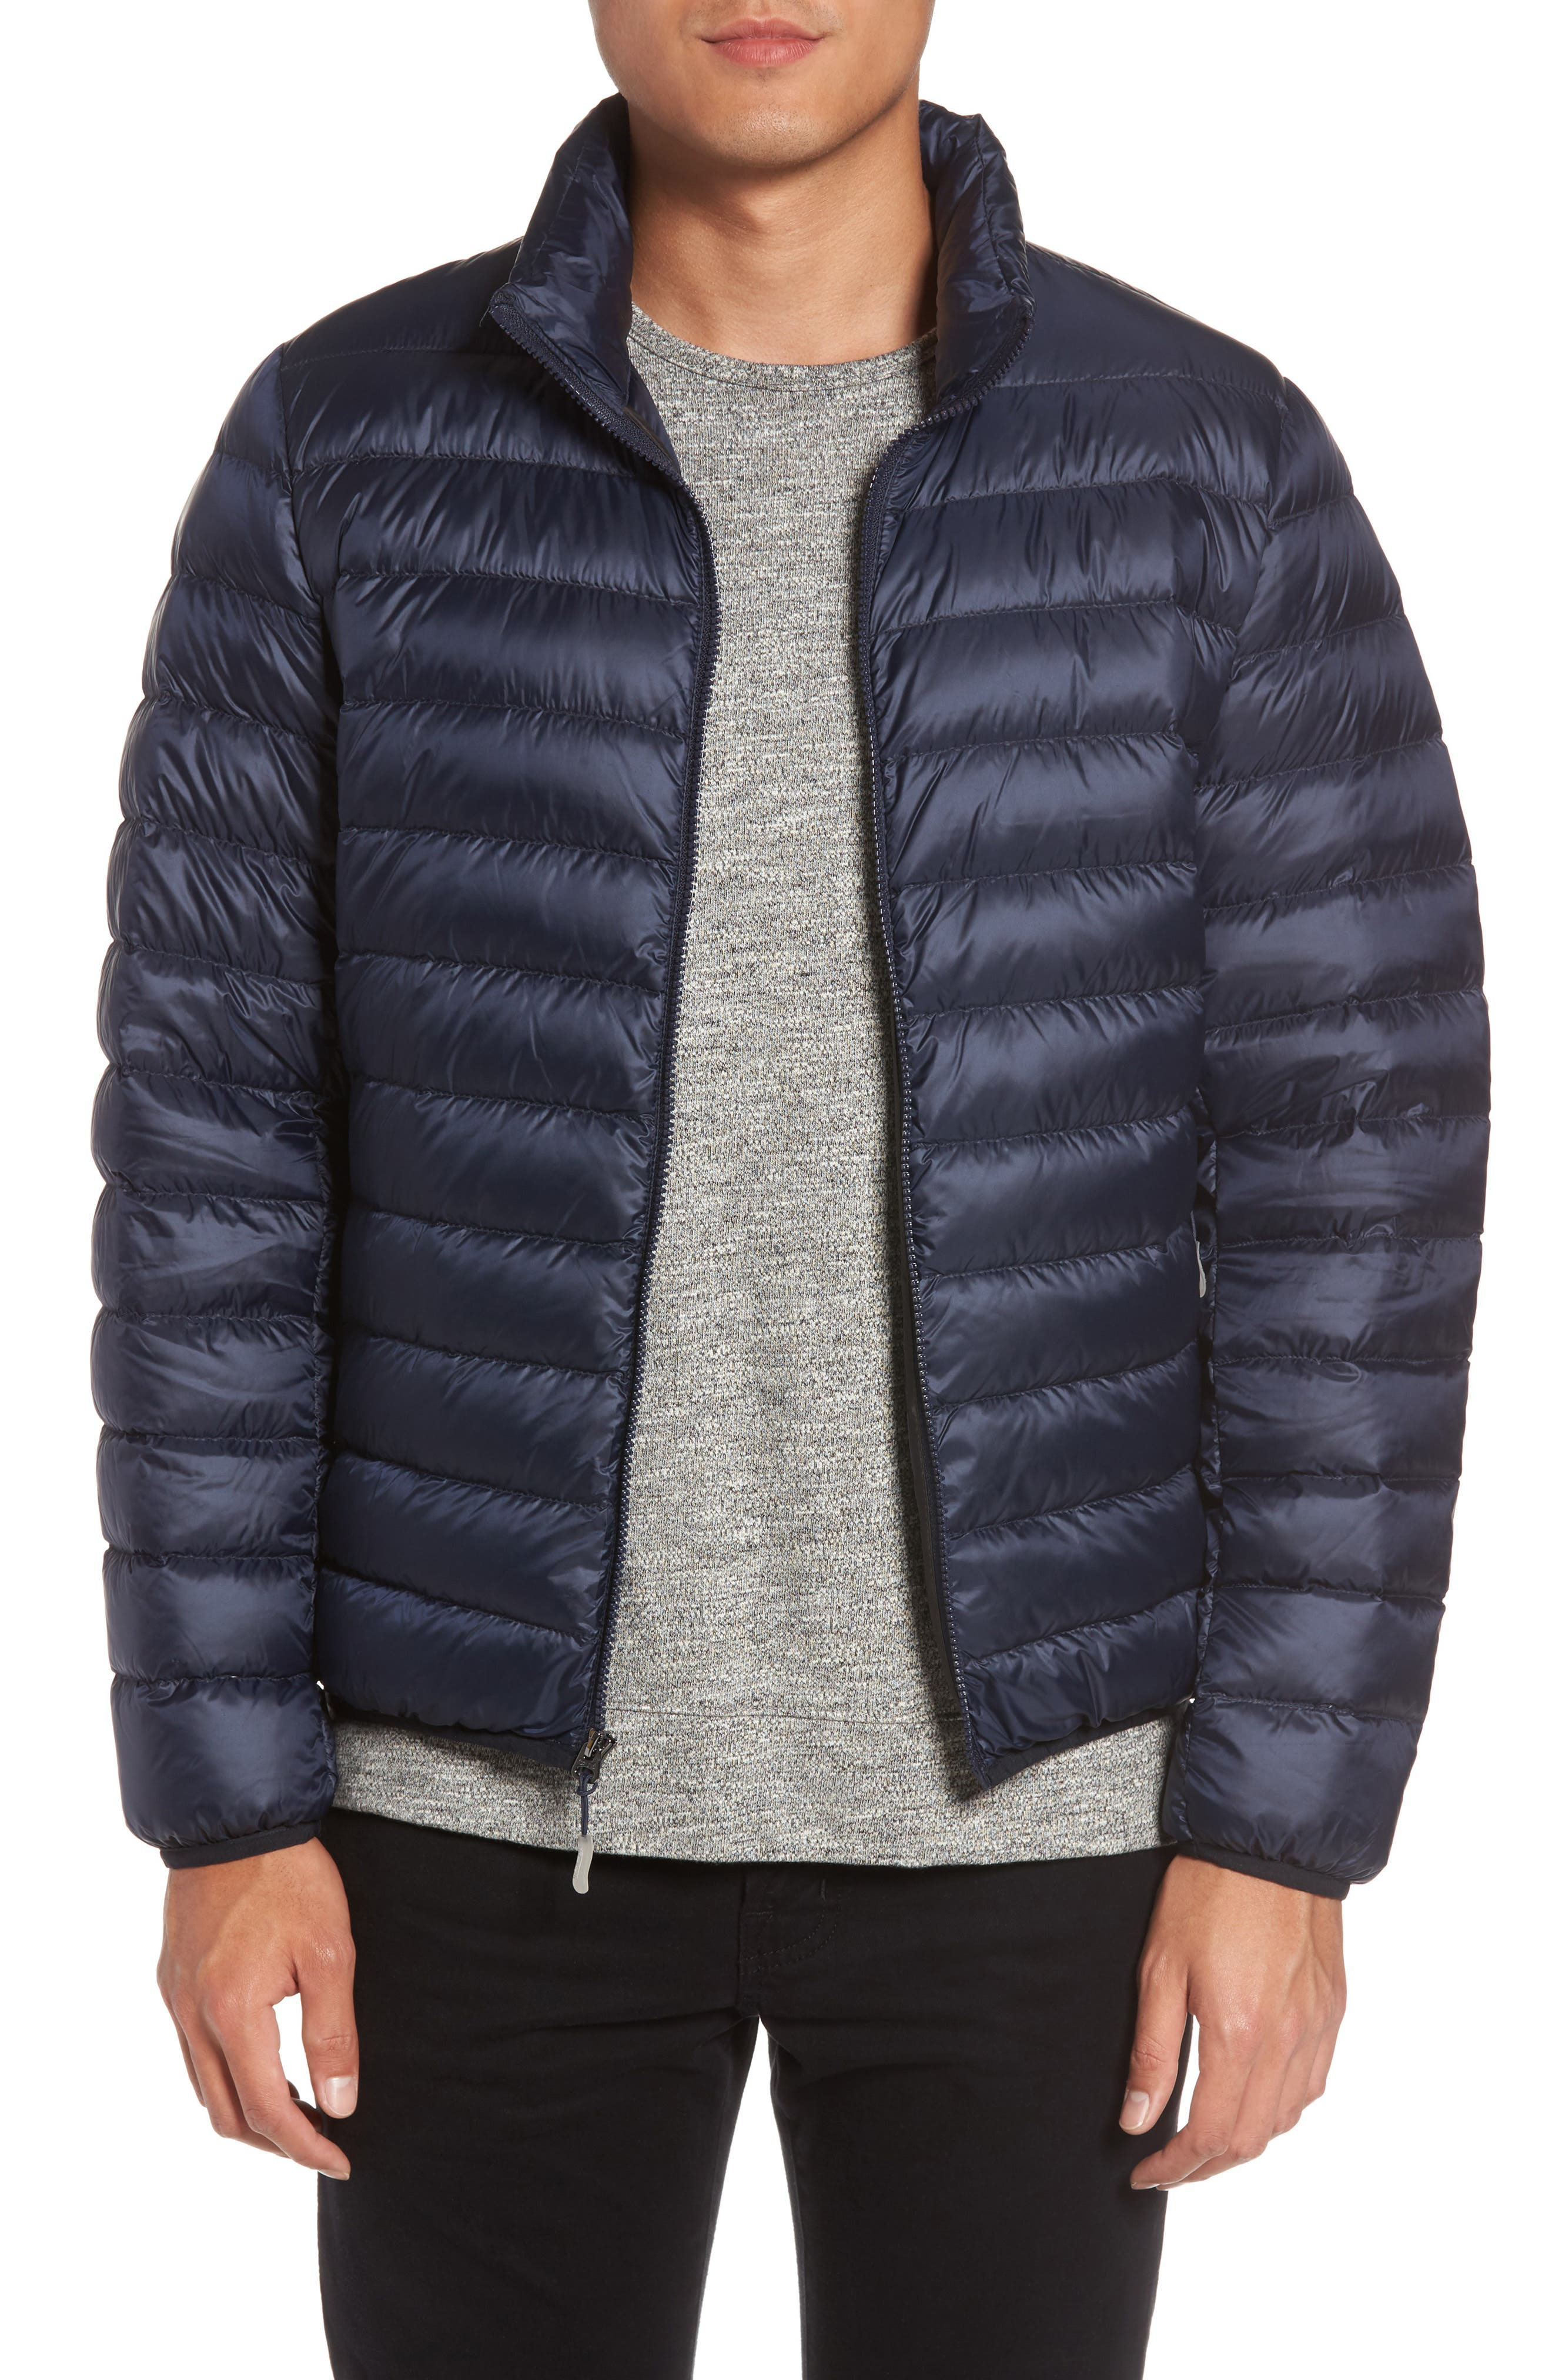 Alternate Image 1 Selected - Tumi Pax Packable Quilted Jacket